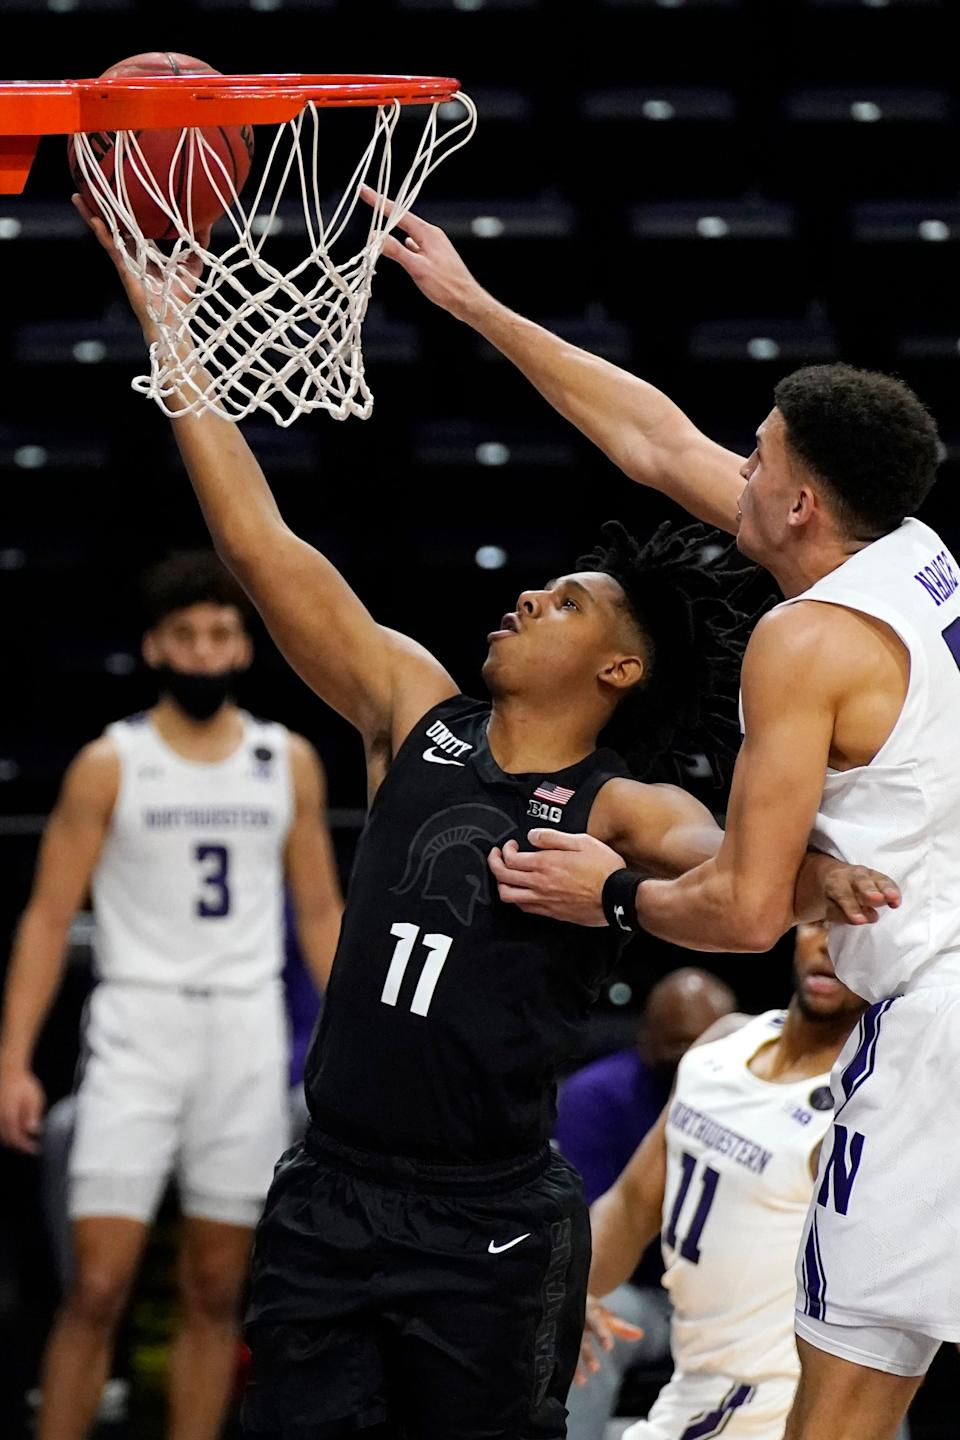 Michigan State guard A.J. Hoggard, left, drives to the basket past Northwestern forward Pete Nance during the first half of an NCAA college basketball game in Evanston, Ill., Sunday, Dec. 20, 2020.